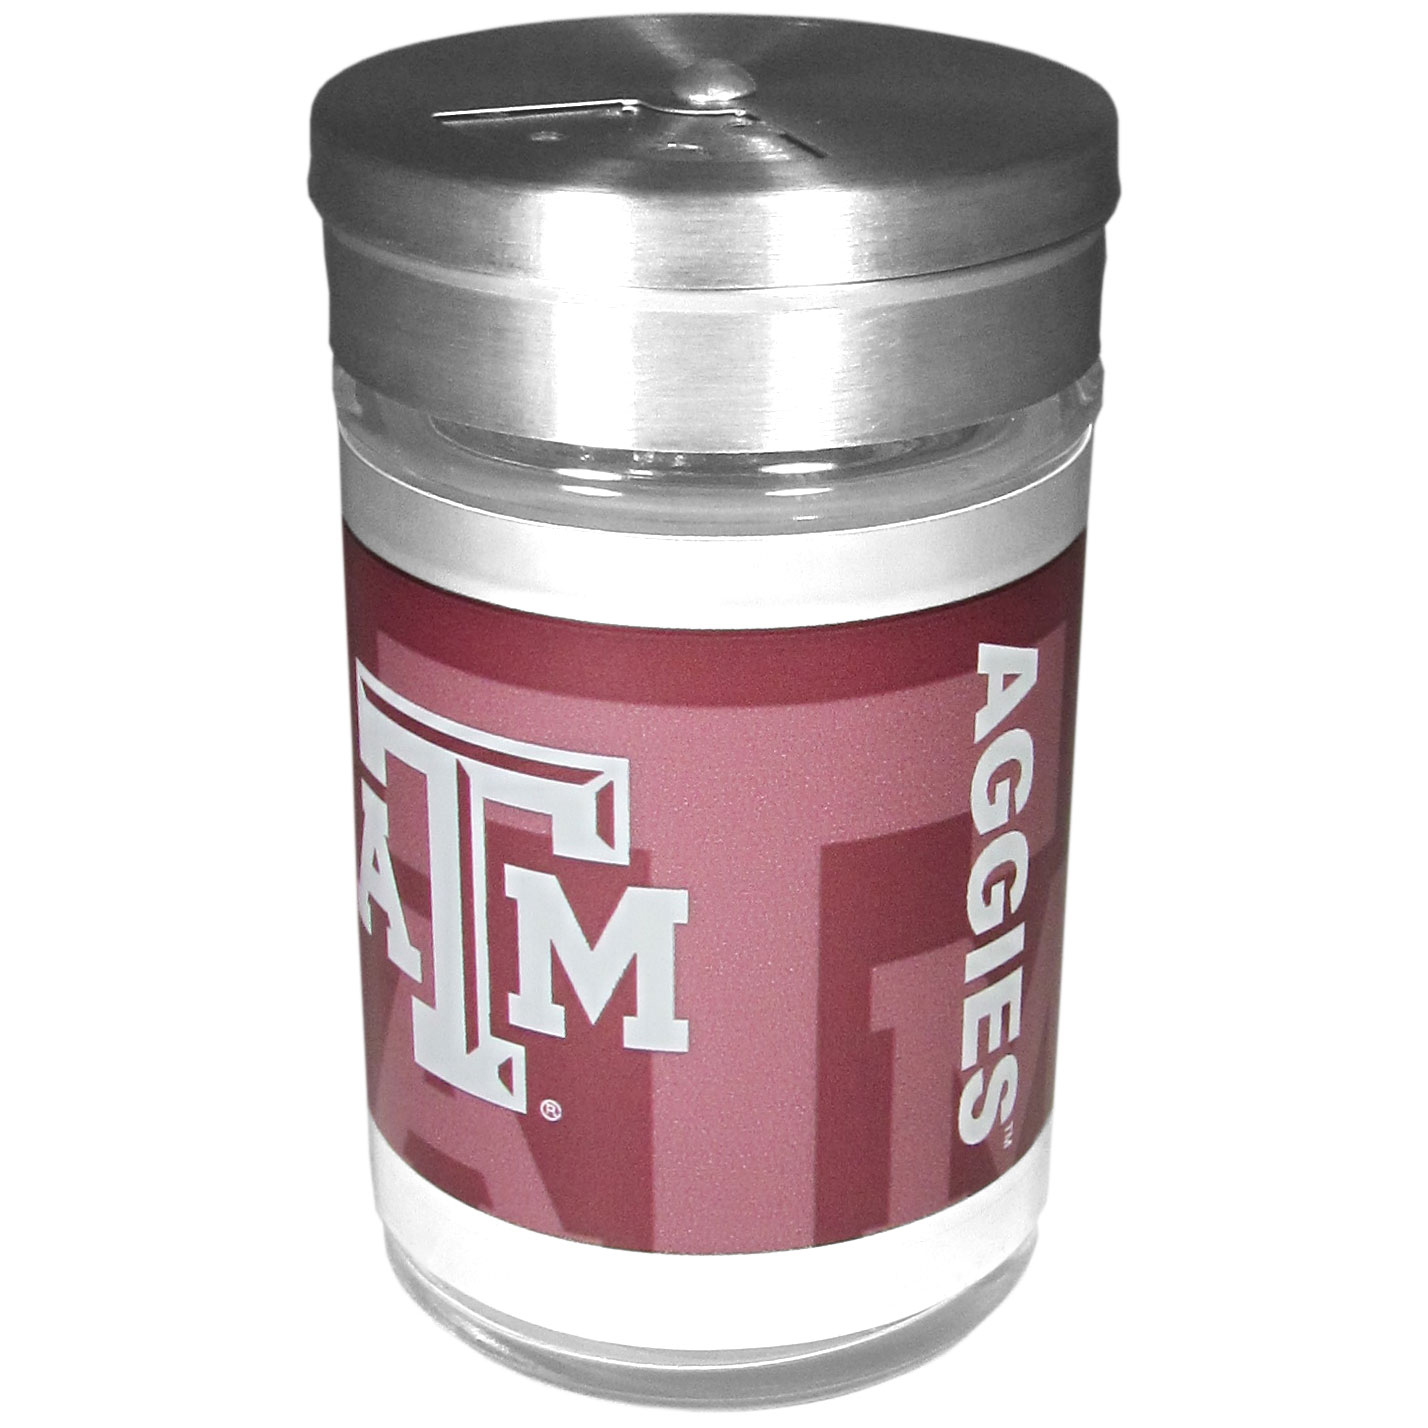 Texas A and M Aggies Tailgater Season Shakers - Spice it up with our Texas A & M Aggies tailgater season shakers! This compact shaker is 2 inch tall with a twist top that closes off the holes at the top making it perfect for travel preventing those messy spills. The shaker has wide holes perfect for keeping your pepper seeds or cheese toppings. The bright team graphics will make you the envy of the other fans while you are grilling up your tailgating goodies.